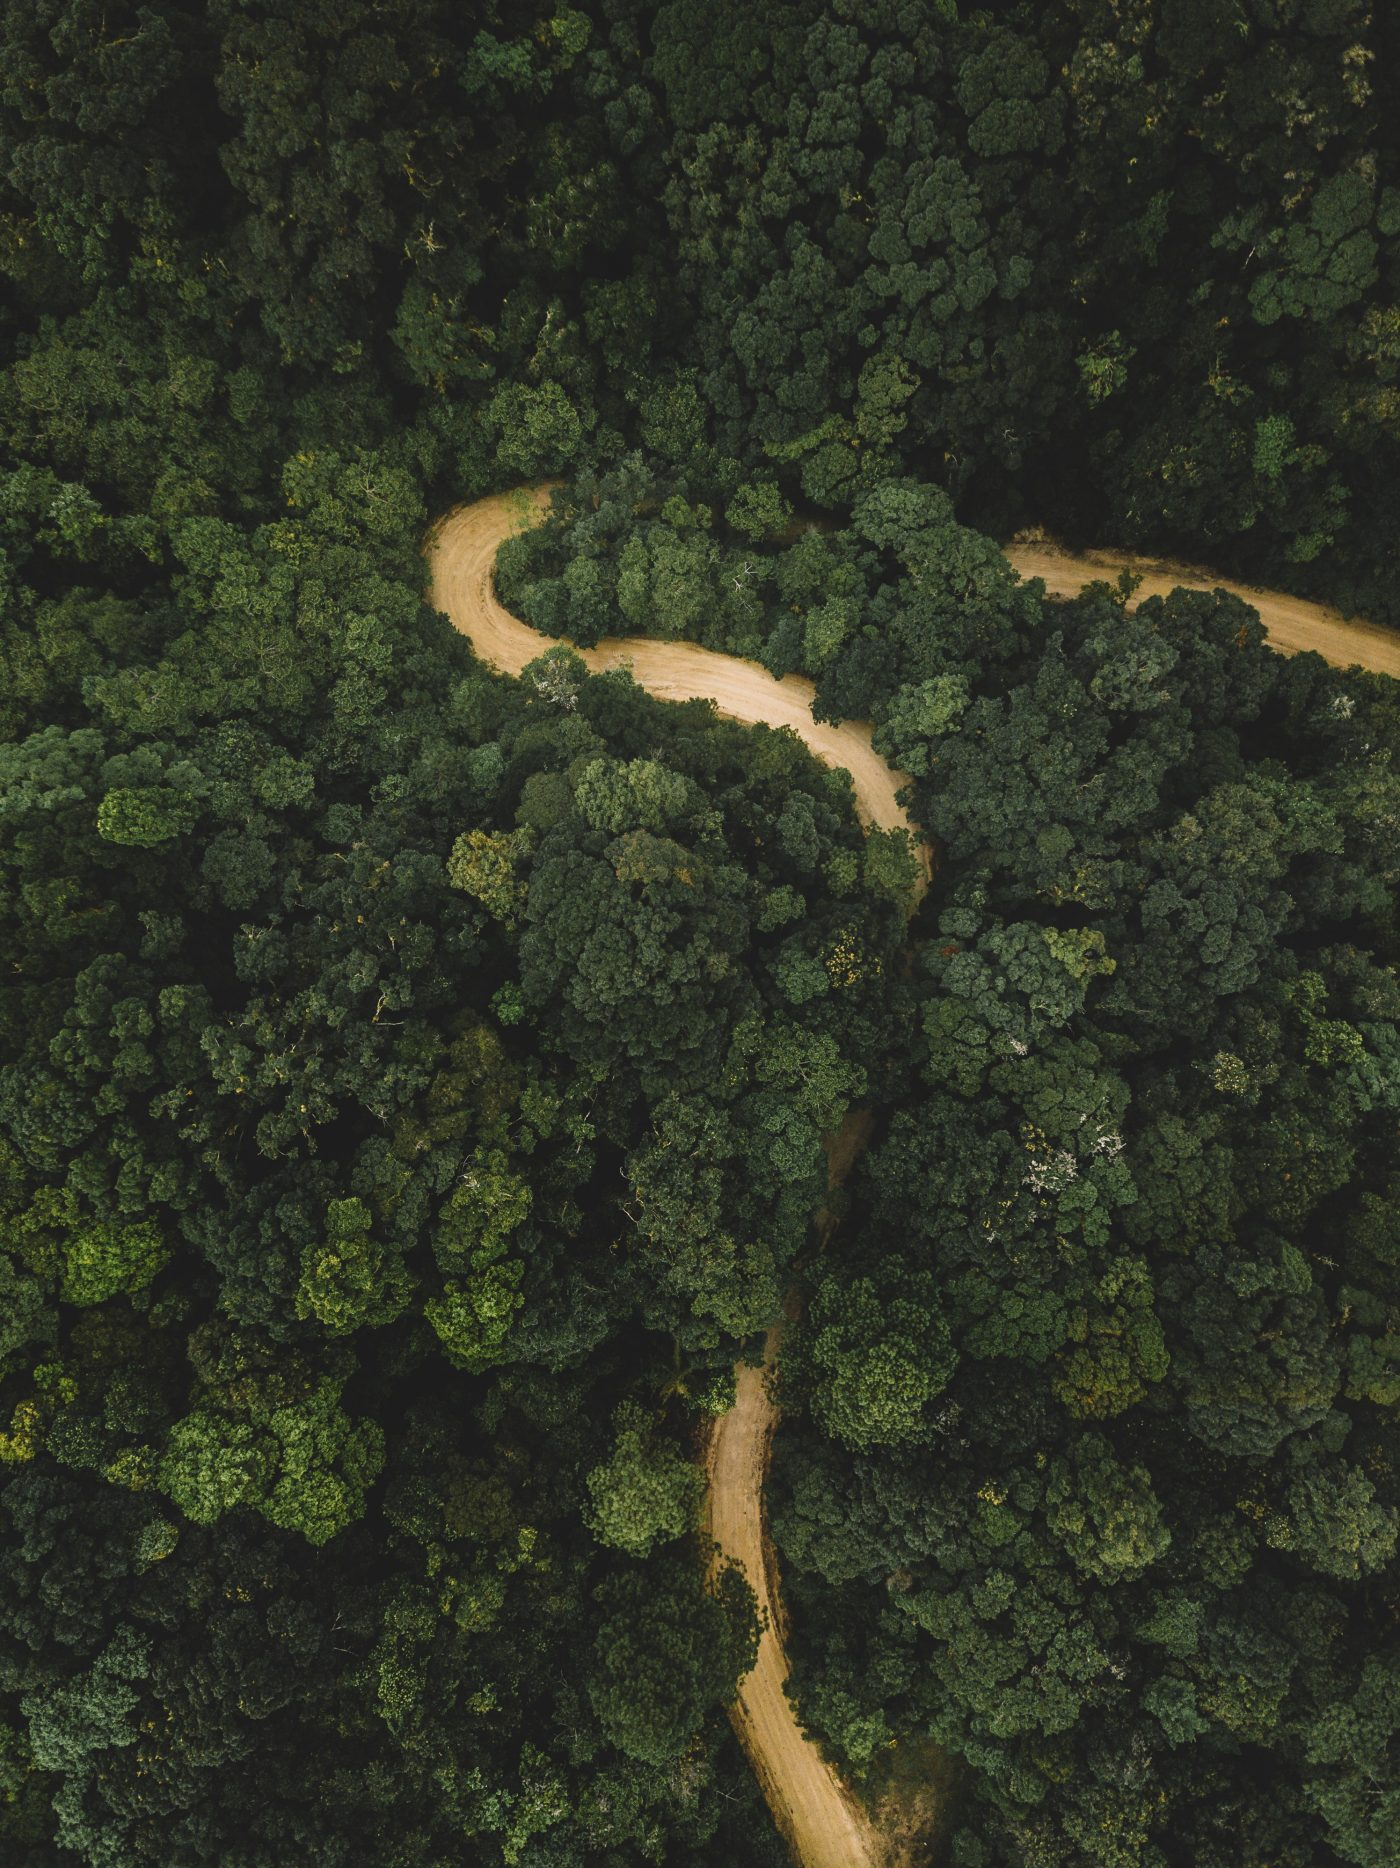 Picture of Honduras Forest scape from above with a winding dirt road